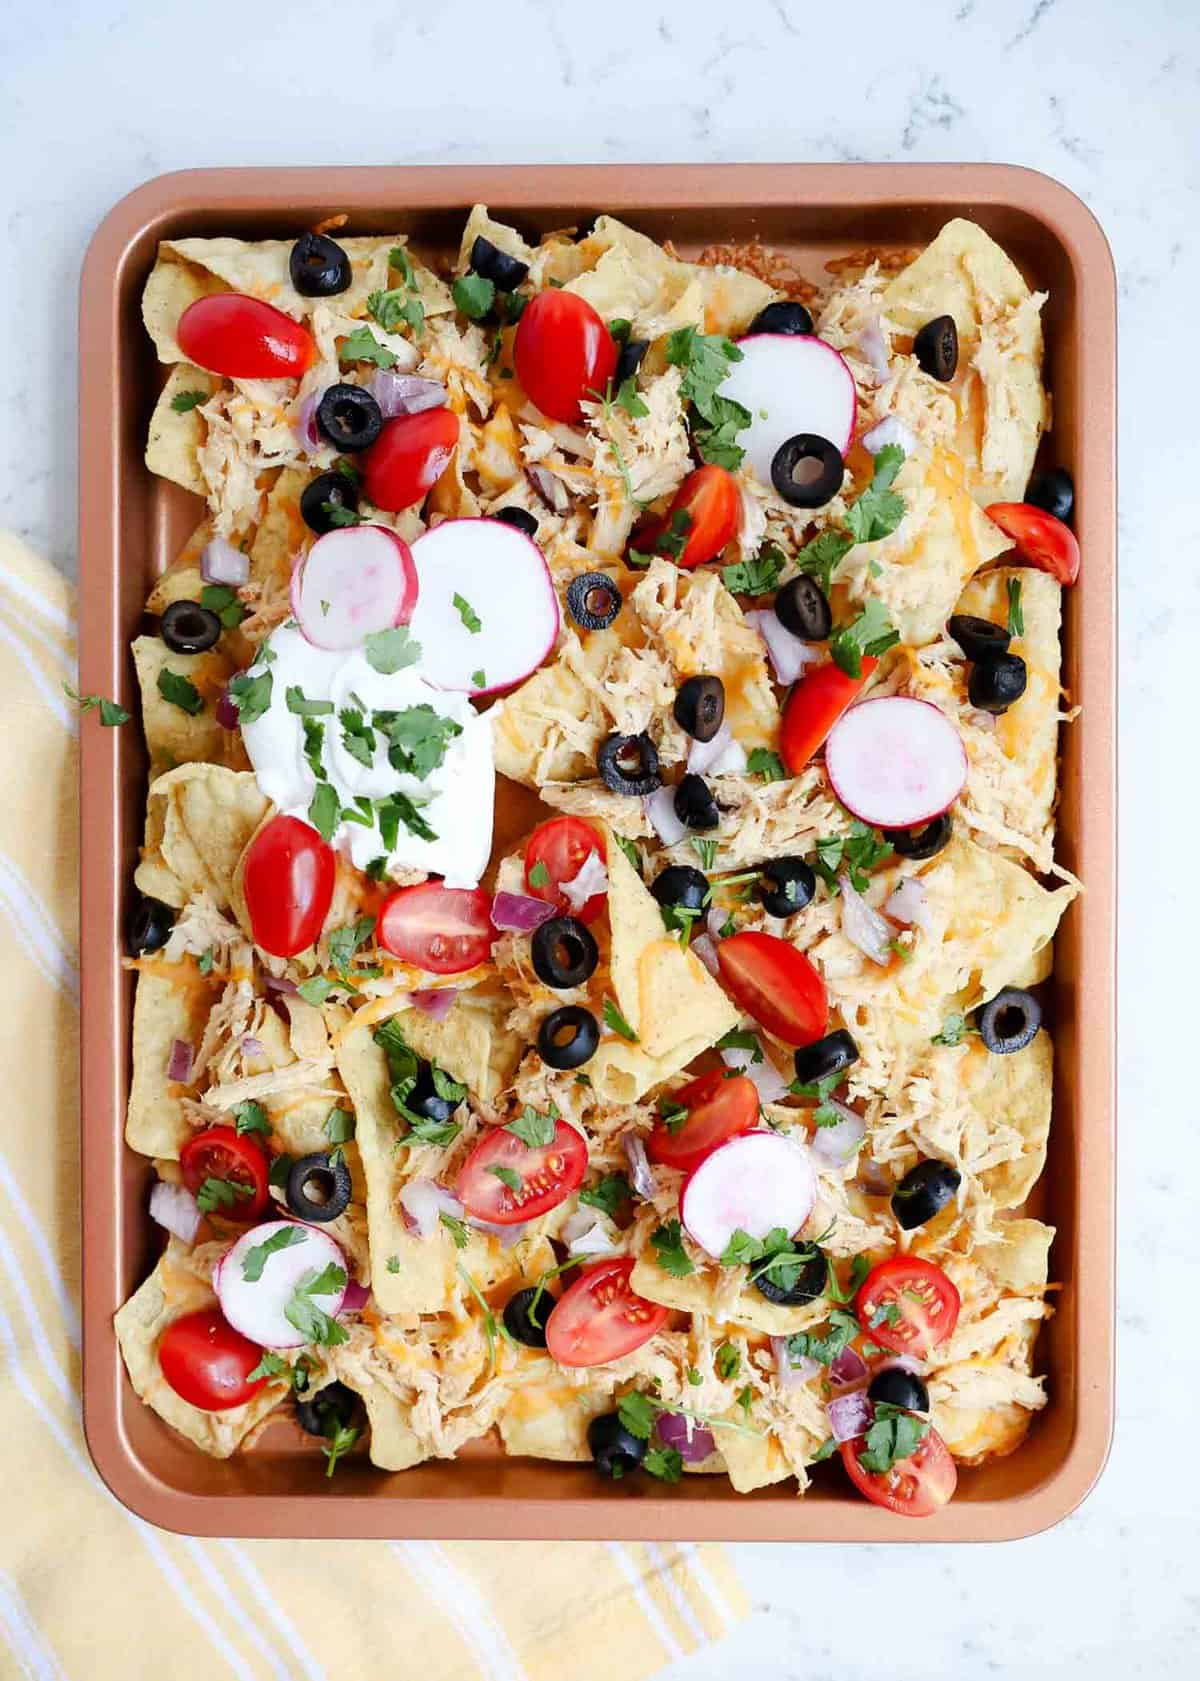 Sheet pan nachos with shredded chicken